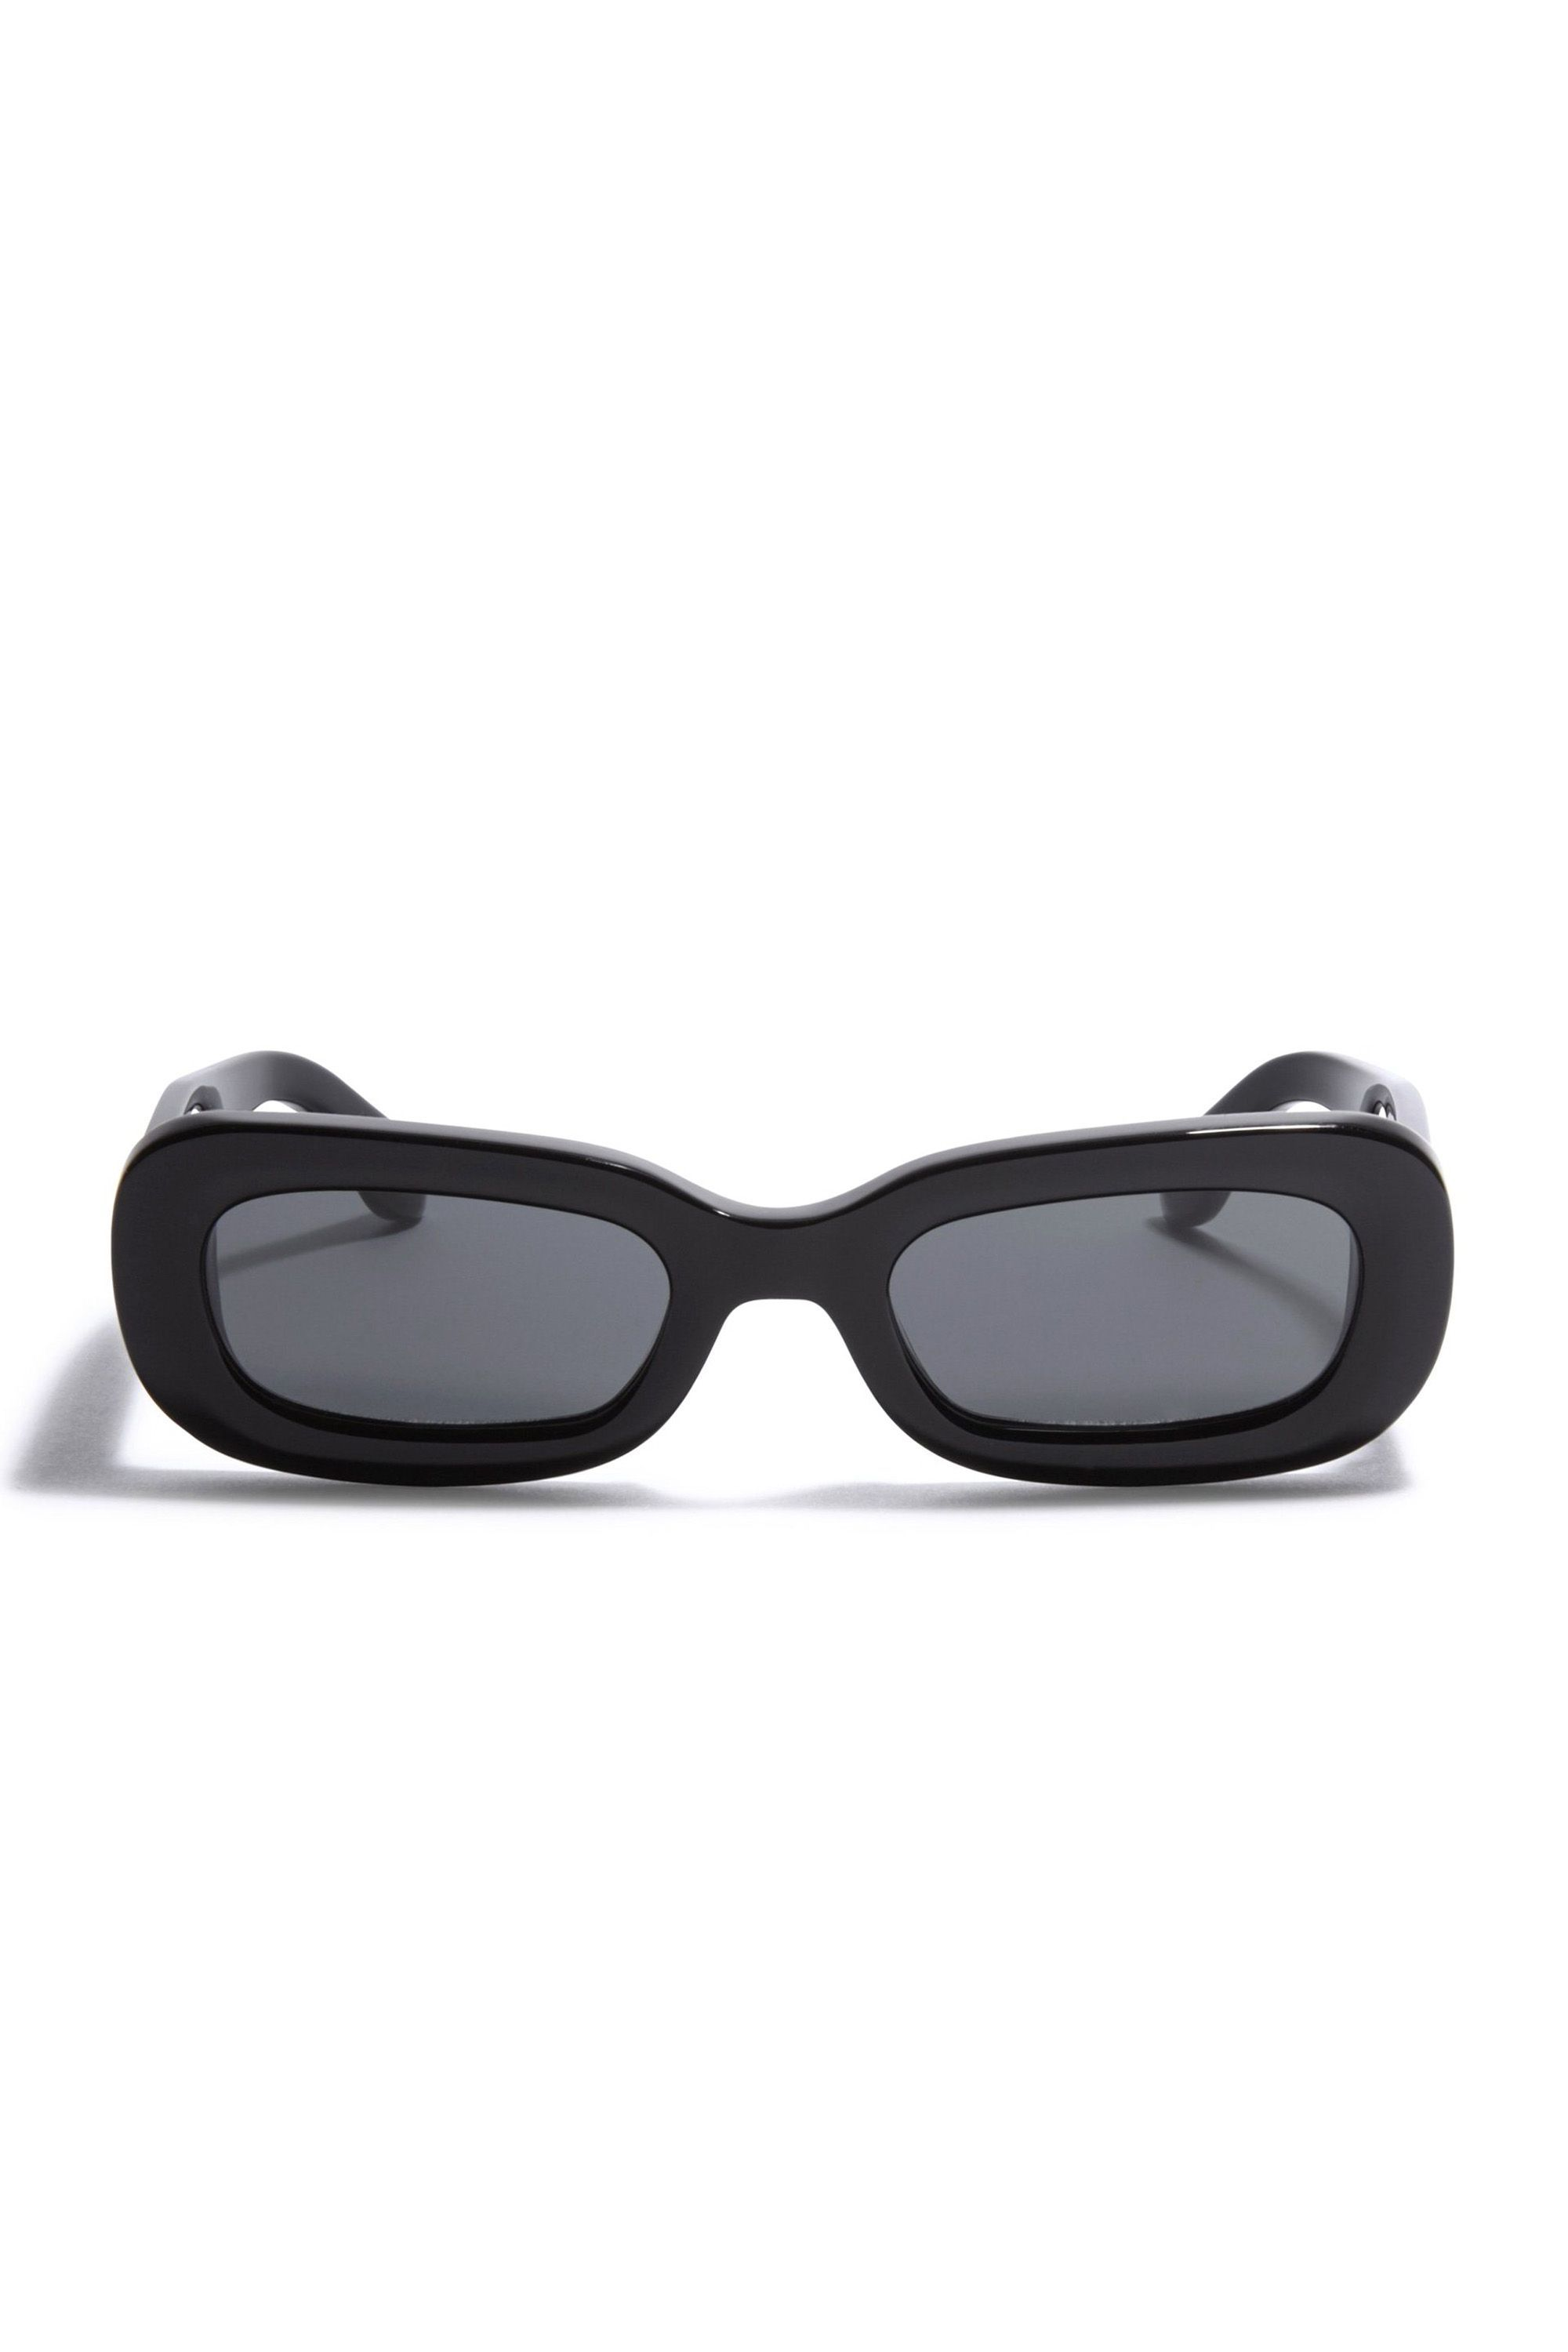 1192f0a3822 Best sunglasses brands for where to buy new designer sunglasses jpg  2000x3000 Sunglasses trending products for